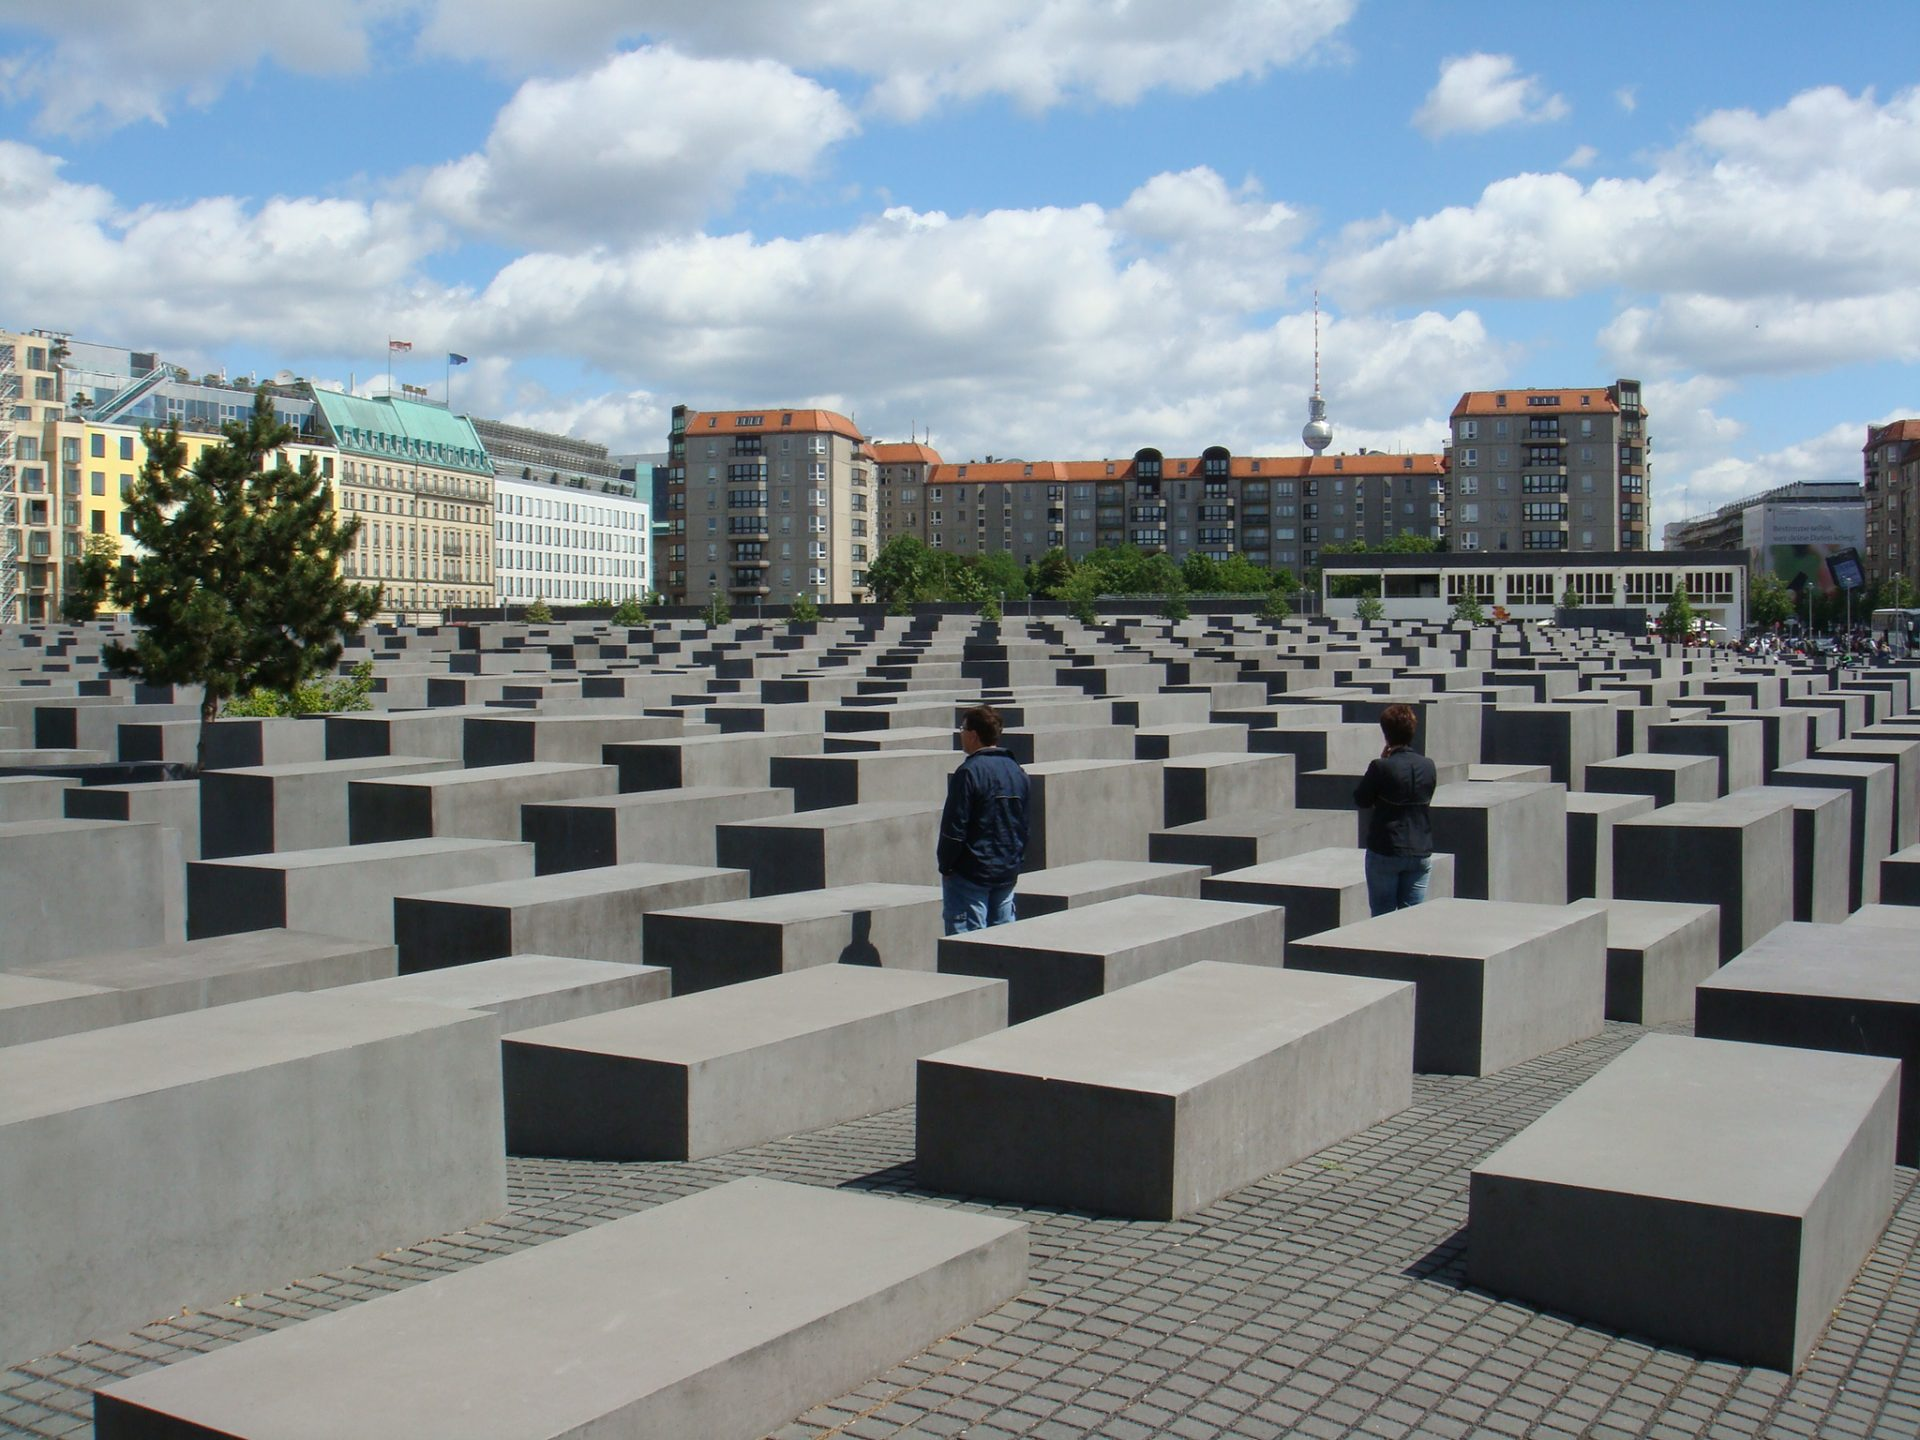 The Berlin Holocaust Memorial